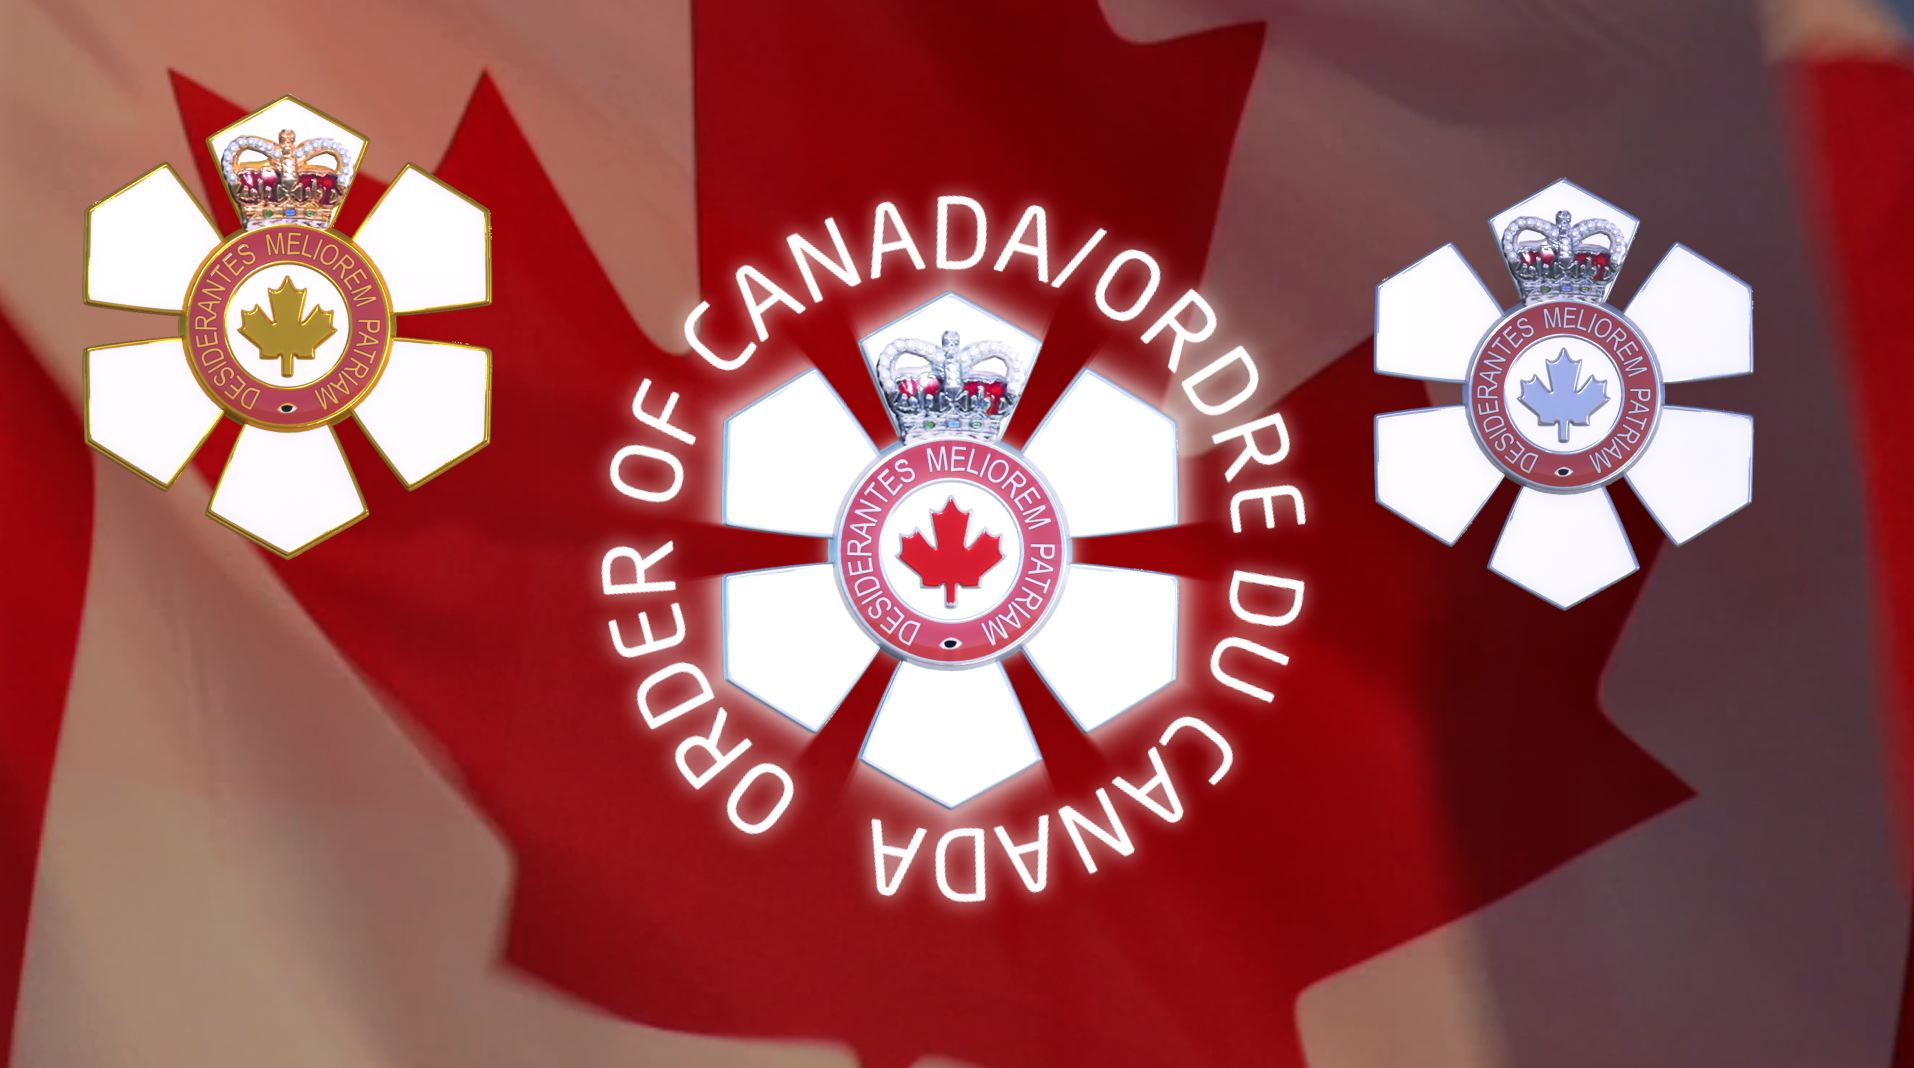 Order of Canada for the Canada Pavillion at the 2010 Olympic Winter Games